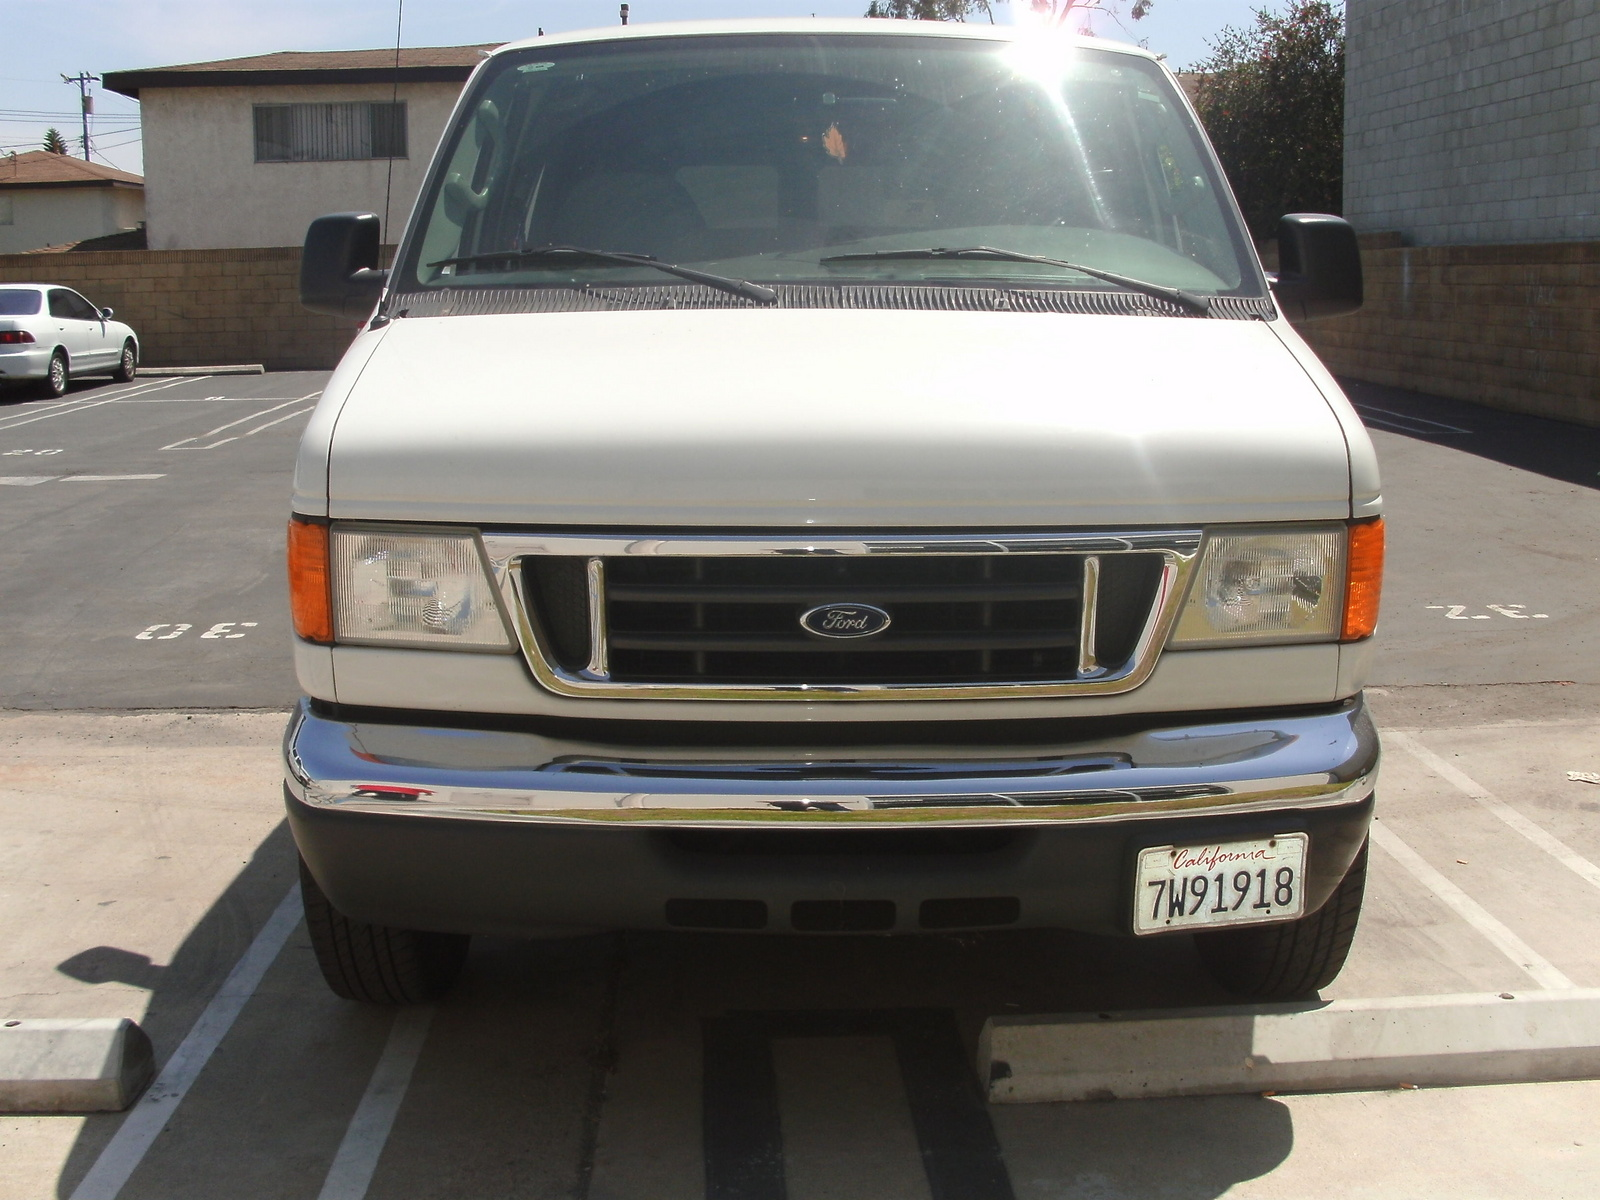 hight resolution of 2006 ford econoline wagon 14 ford econoline wagon 14